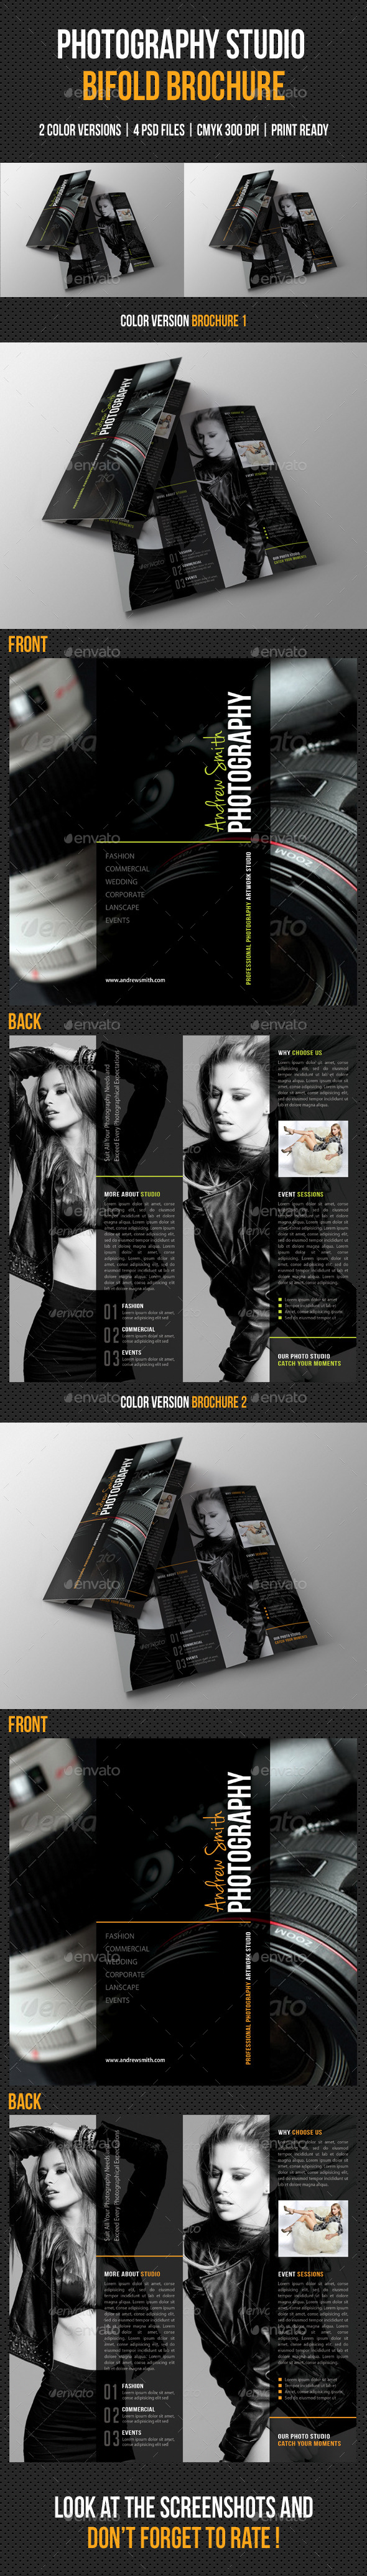 GraphicRiver Photography Studio Bifold Brochure 03 9971409